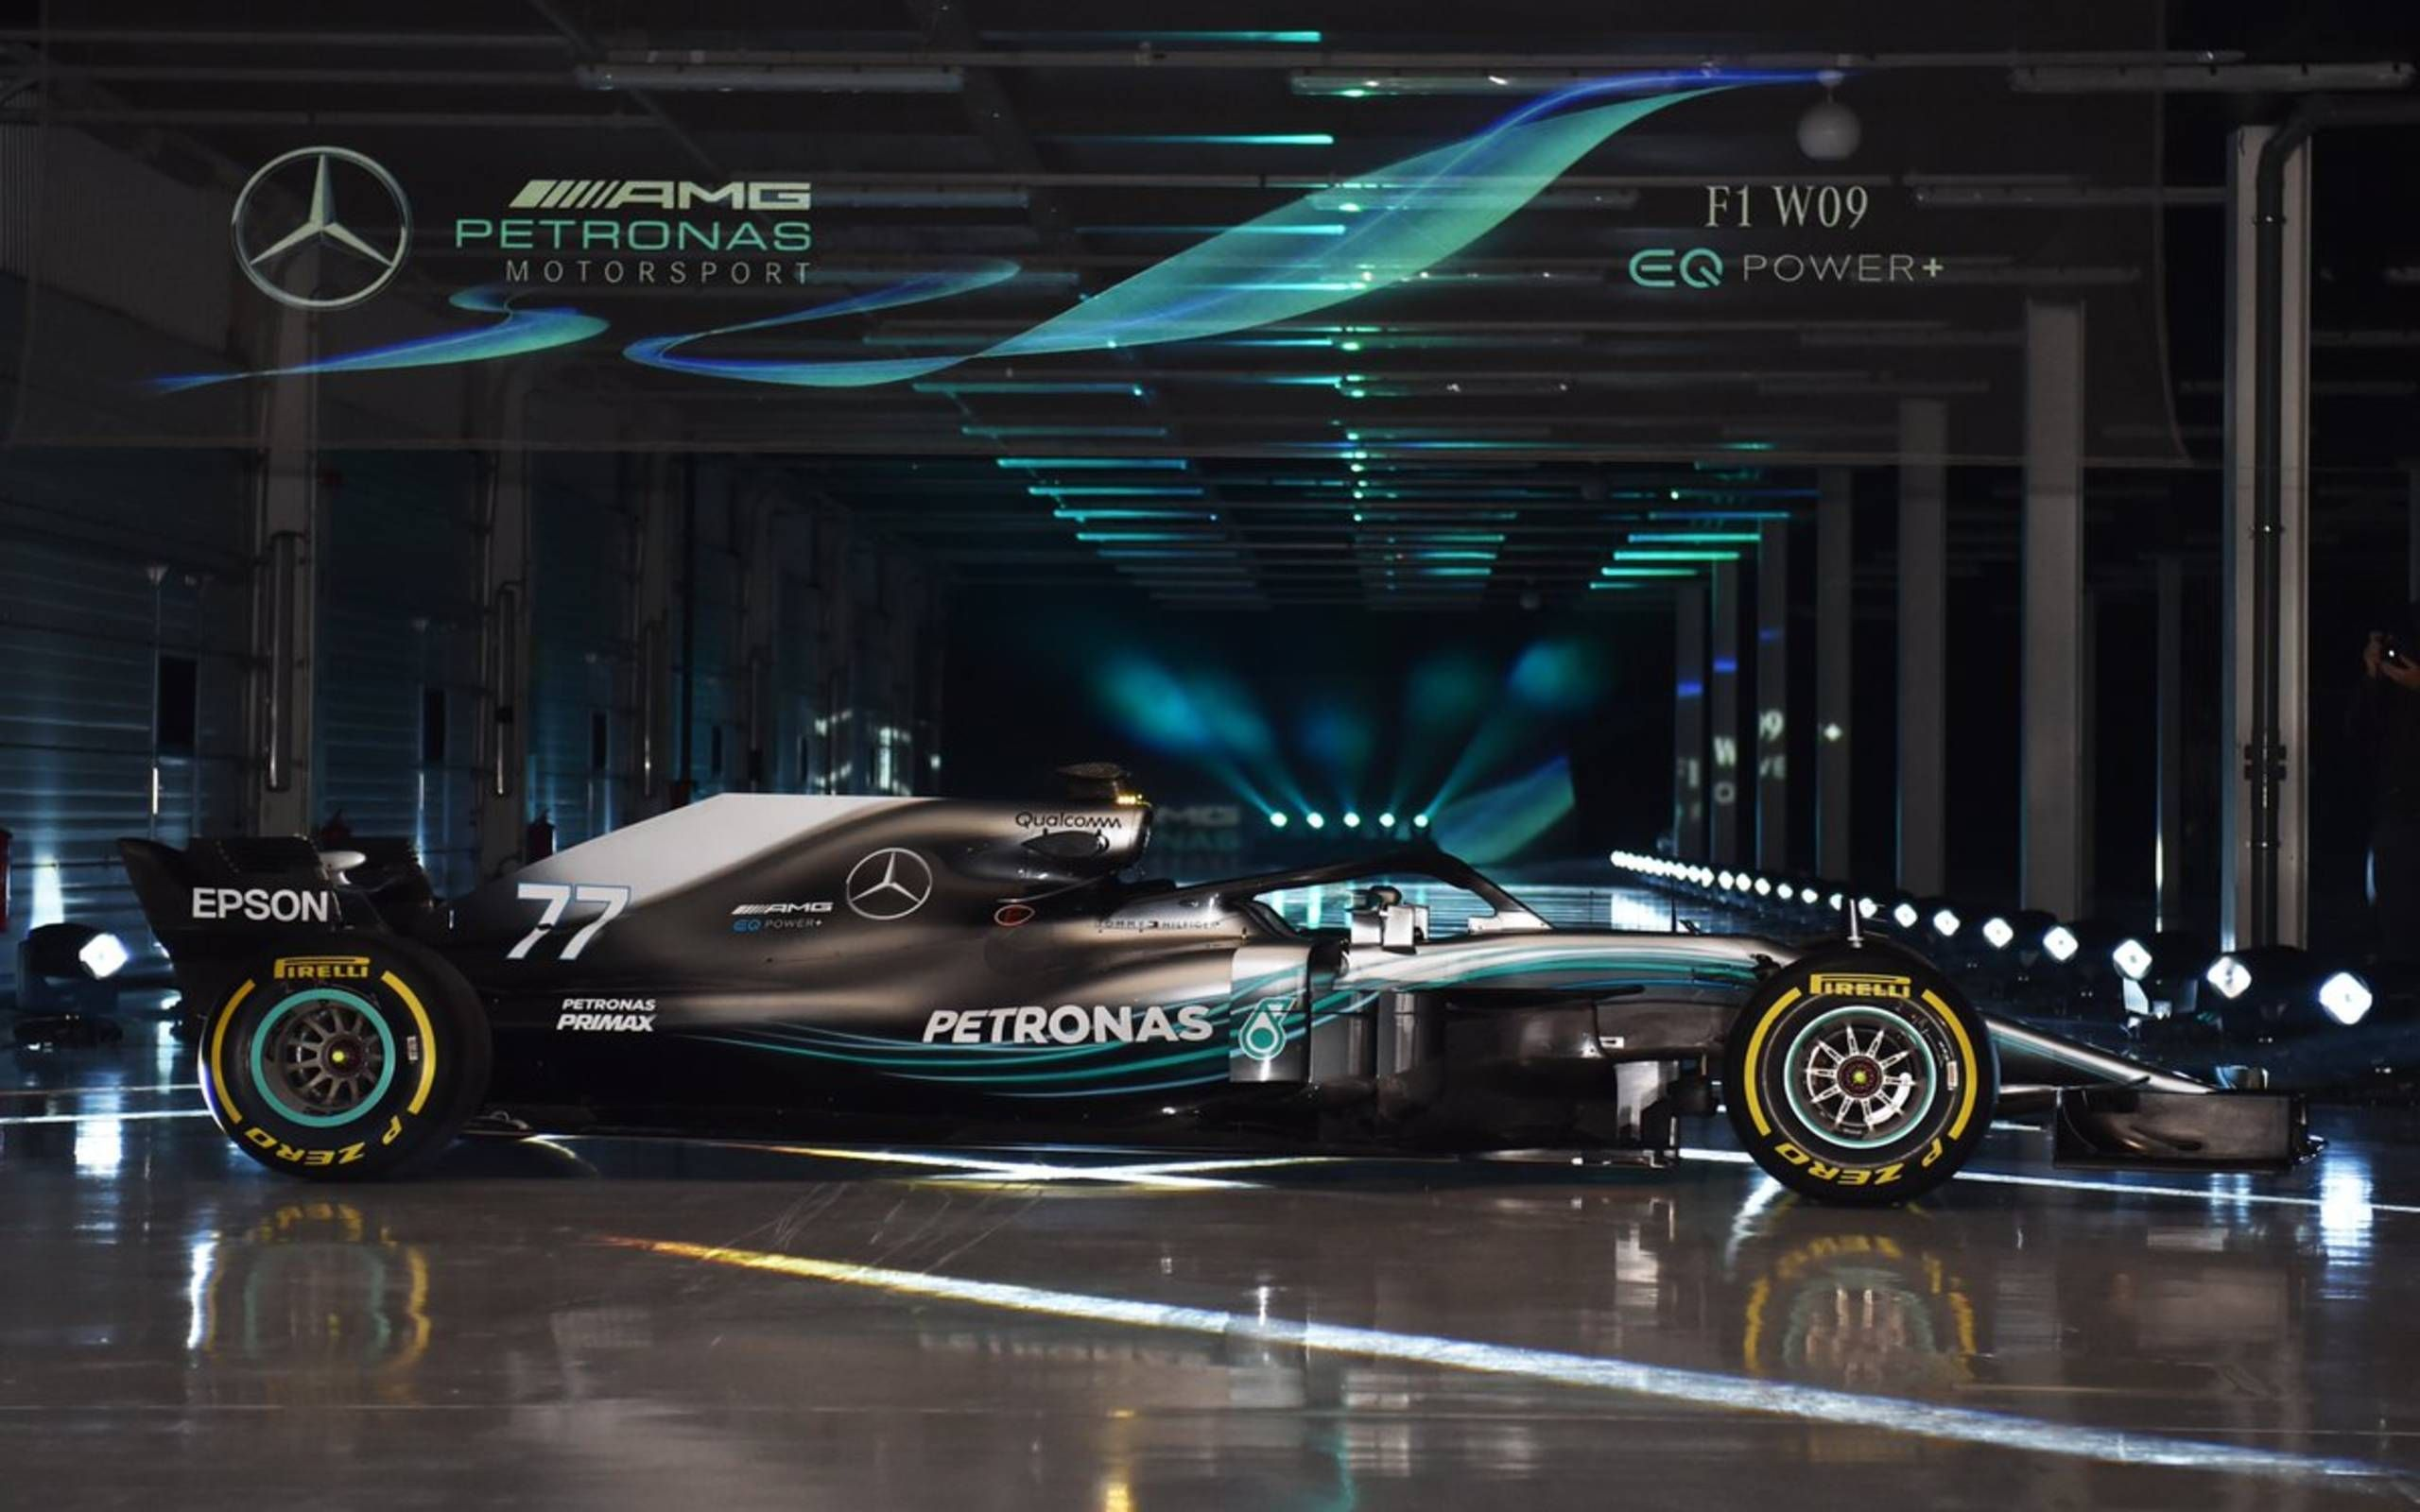 Mercedes Launches New F1 Entry But The Team Principal Wants To Take A Saw To The Halo